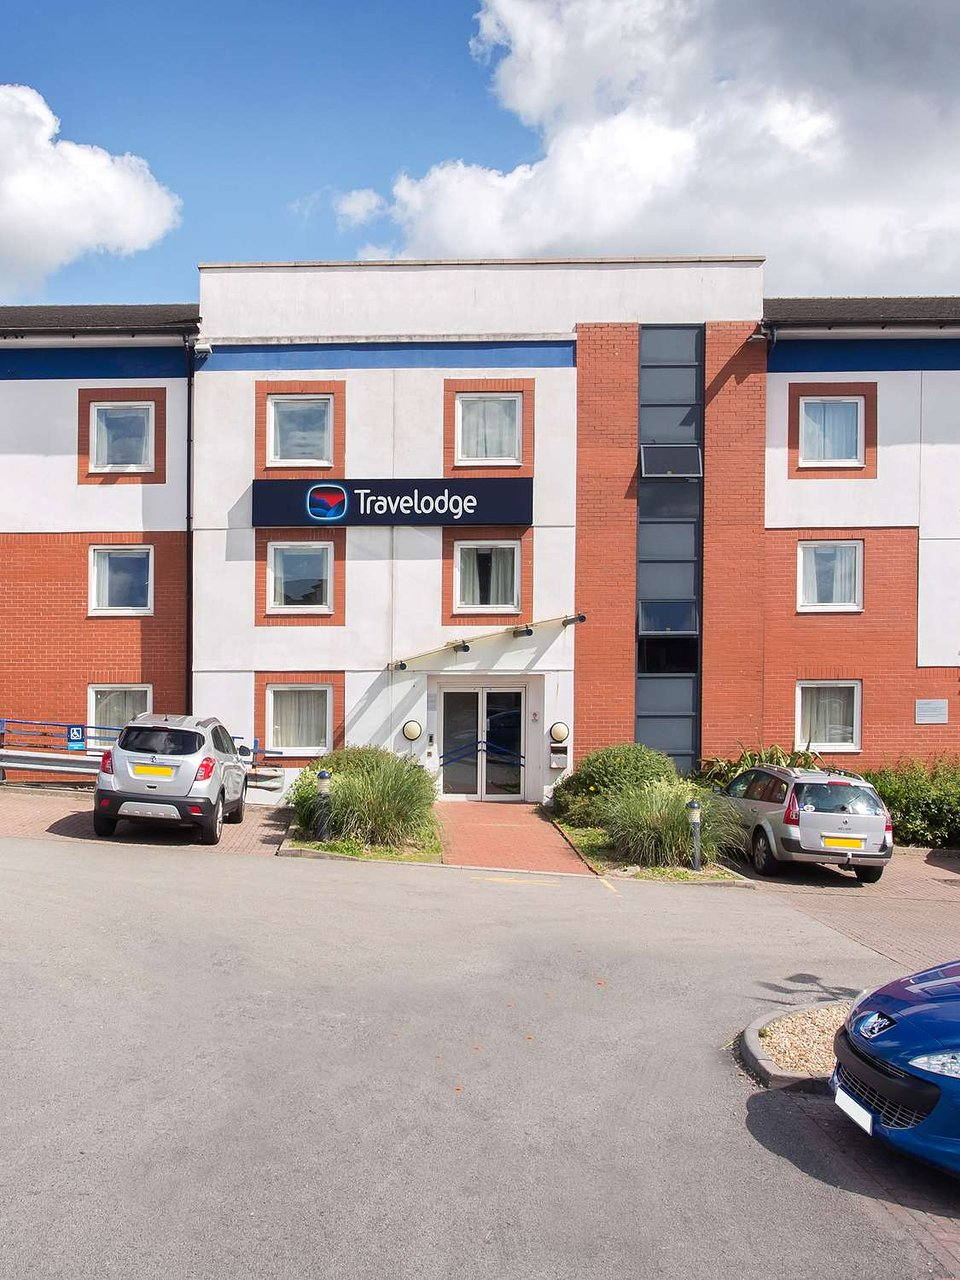 travelodge plymouth derriford hotel updated 2019 prices reviews rh tripadvisor com